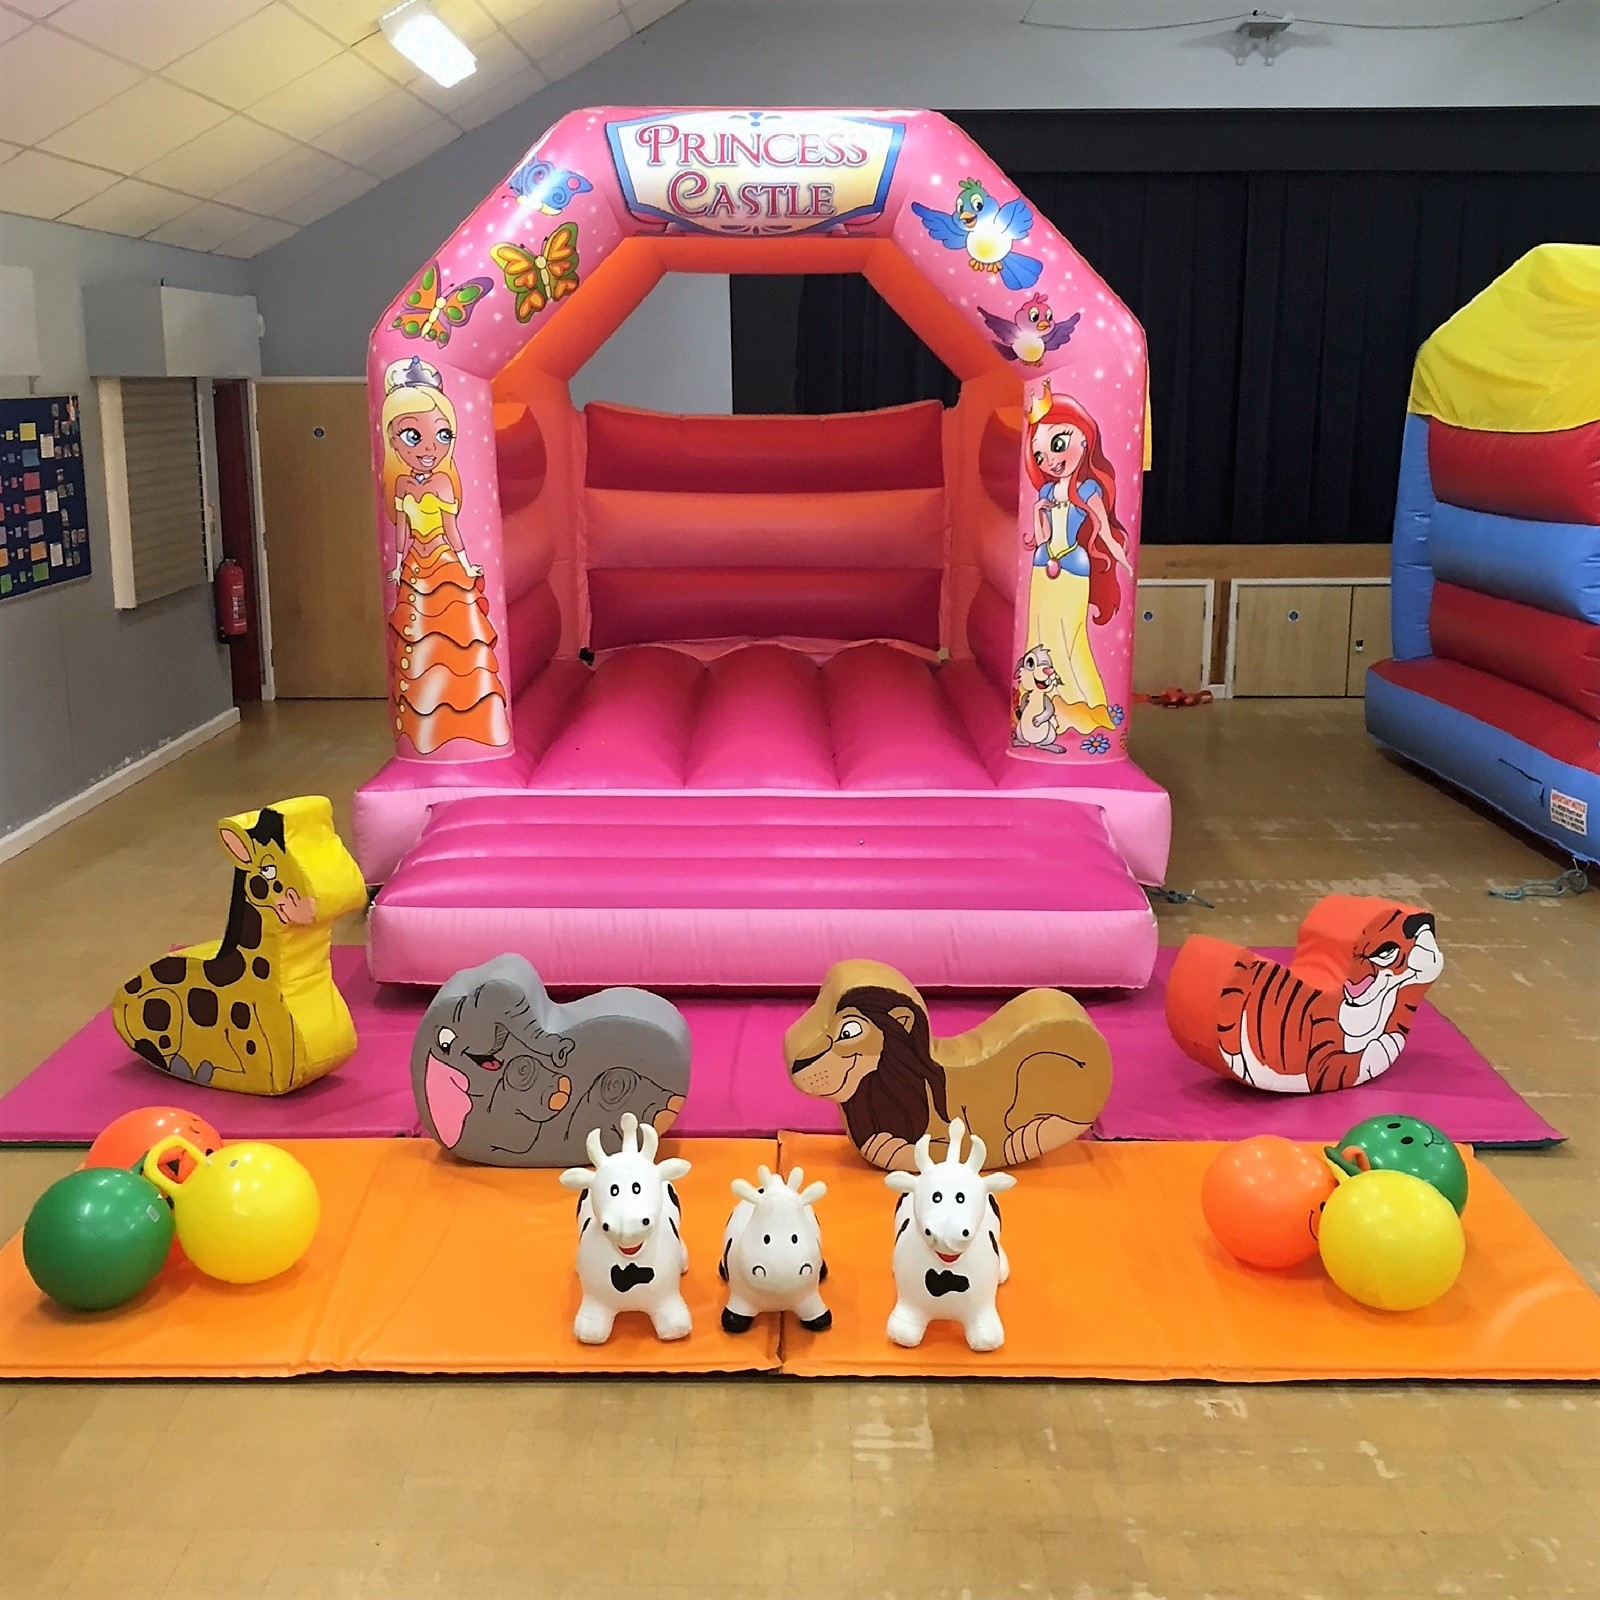 Leeds Castle Christmas Party: Bouncy Castles And Soft Play